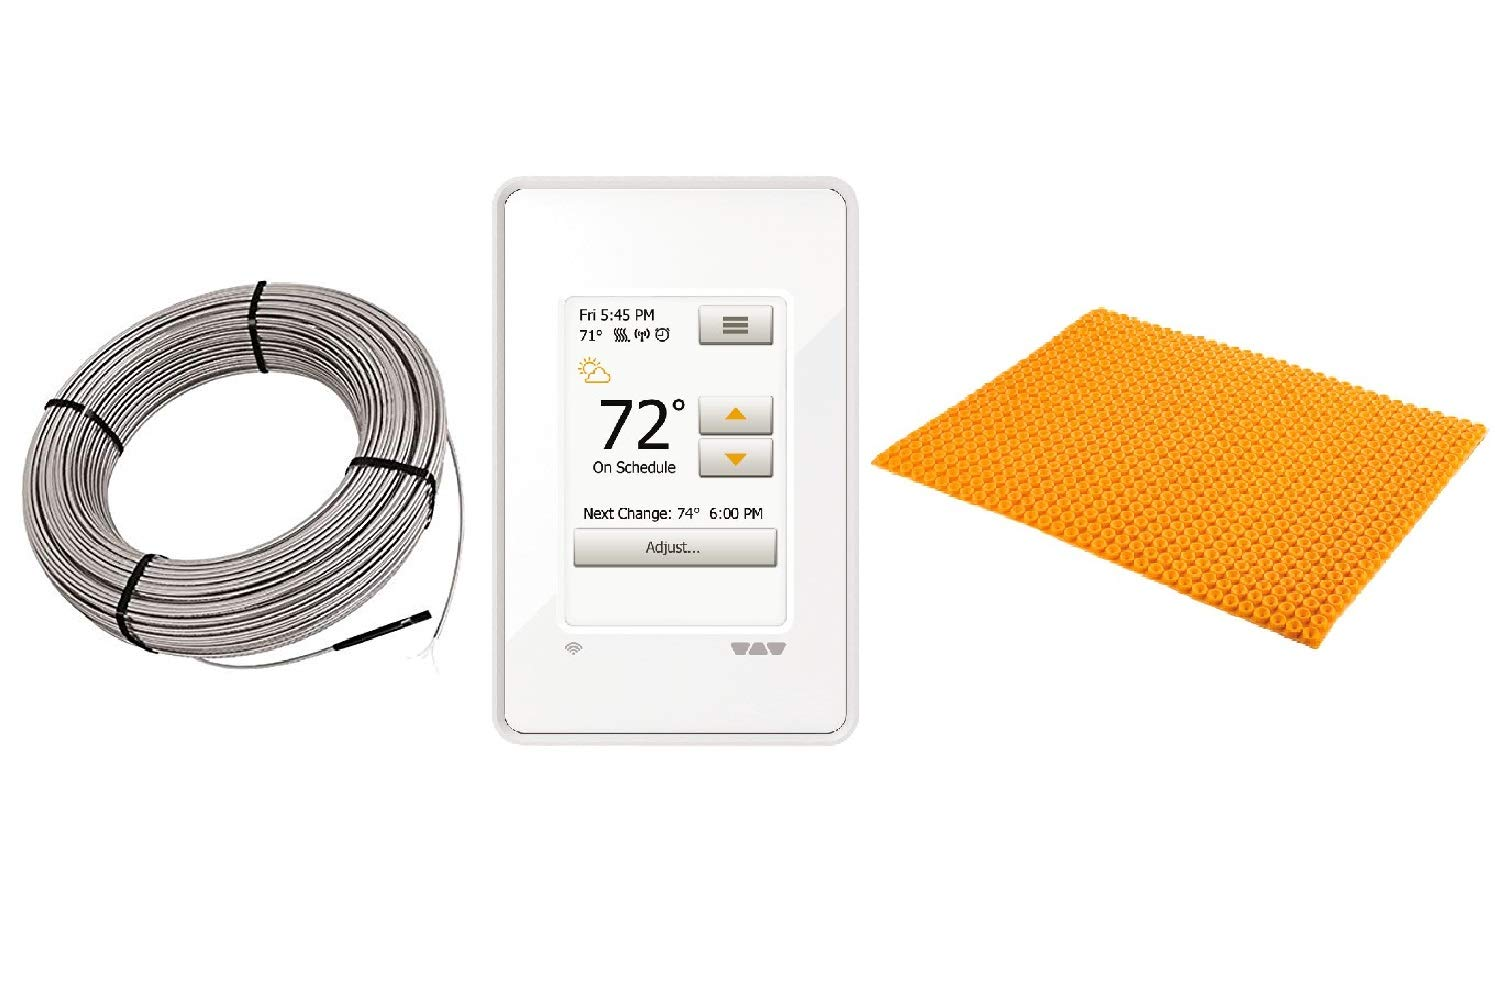 Schluter DITRA Floor Heat E Kit Includes Wi-Fi Touchscreen Thermostat + Heat Membrane + Cable 120V 38 SqFt Heat Kit